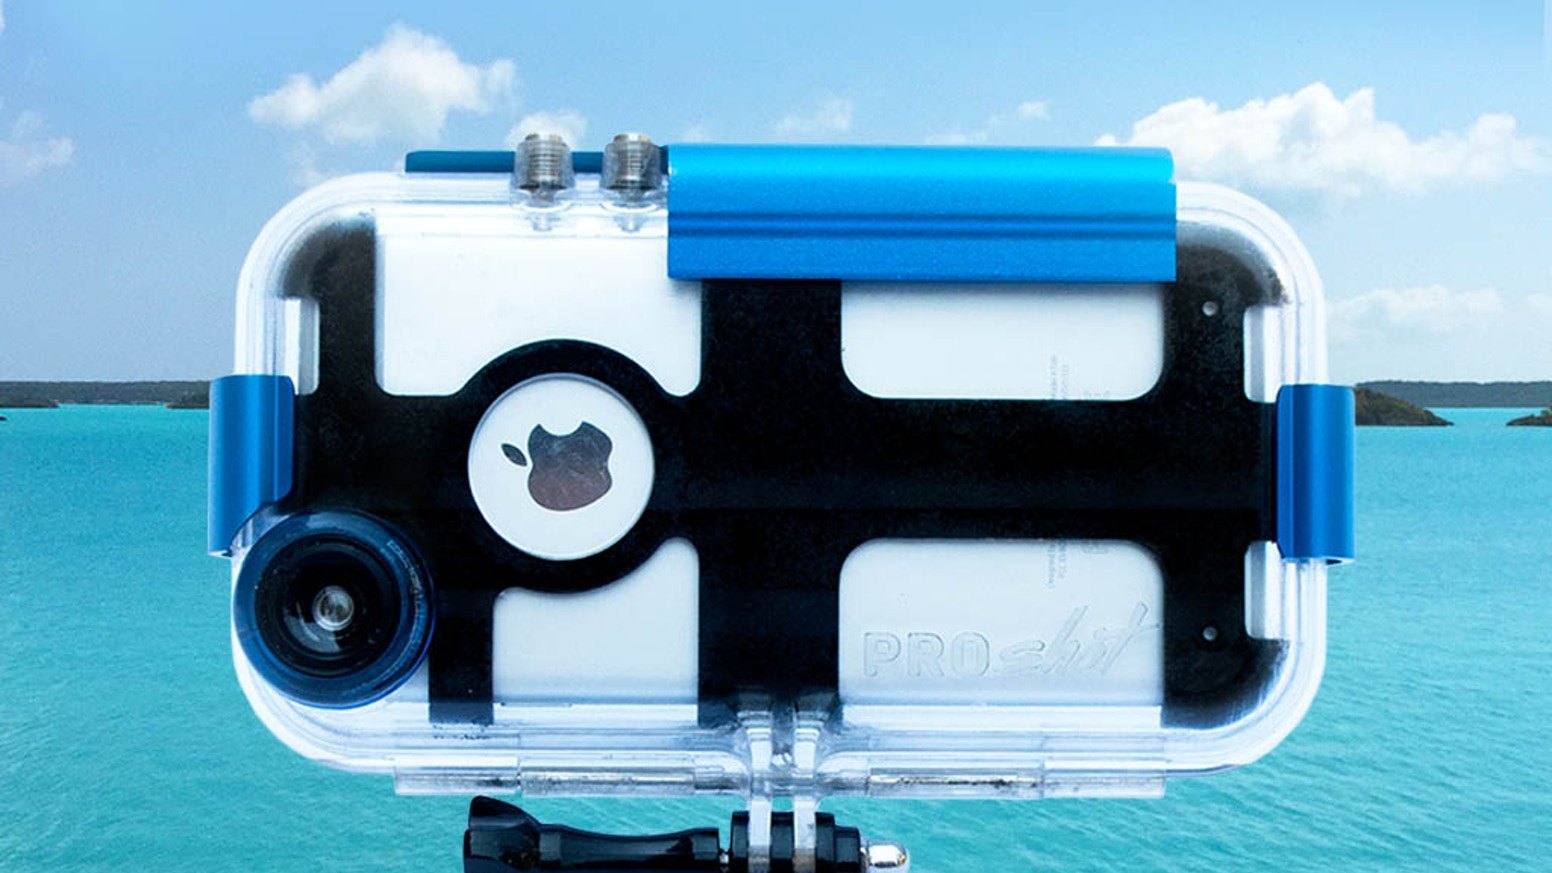 Proshot is a waterproof case that protects your iPhone 6/6s down to 90 feet and can be mounted on almost any surface.